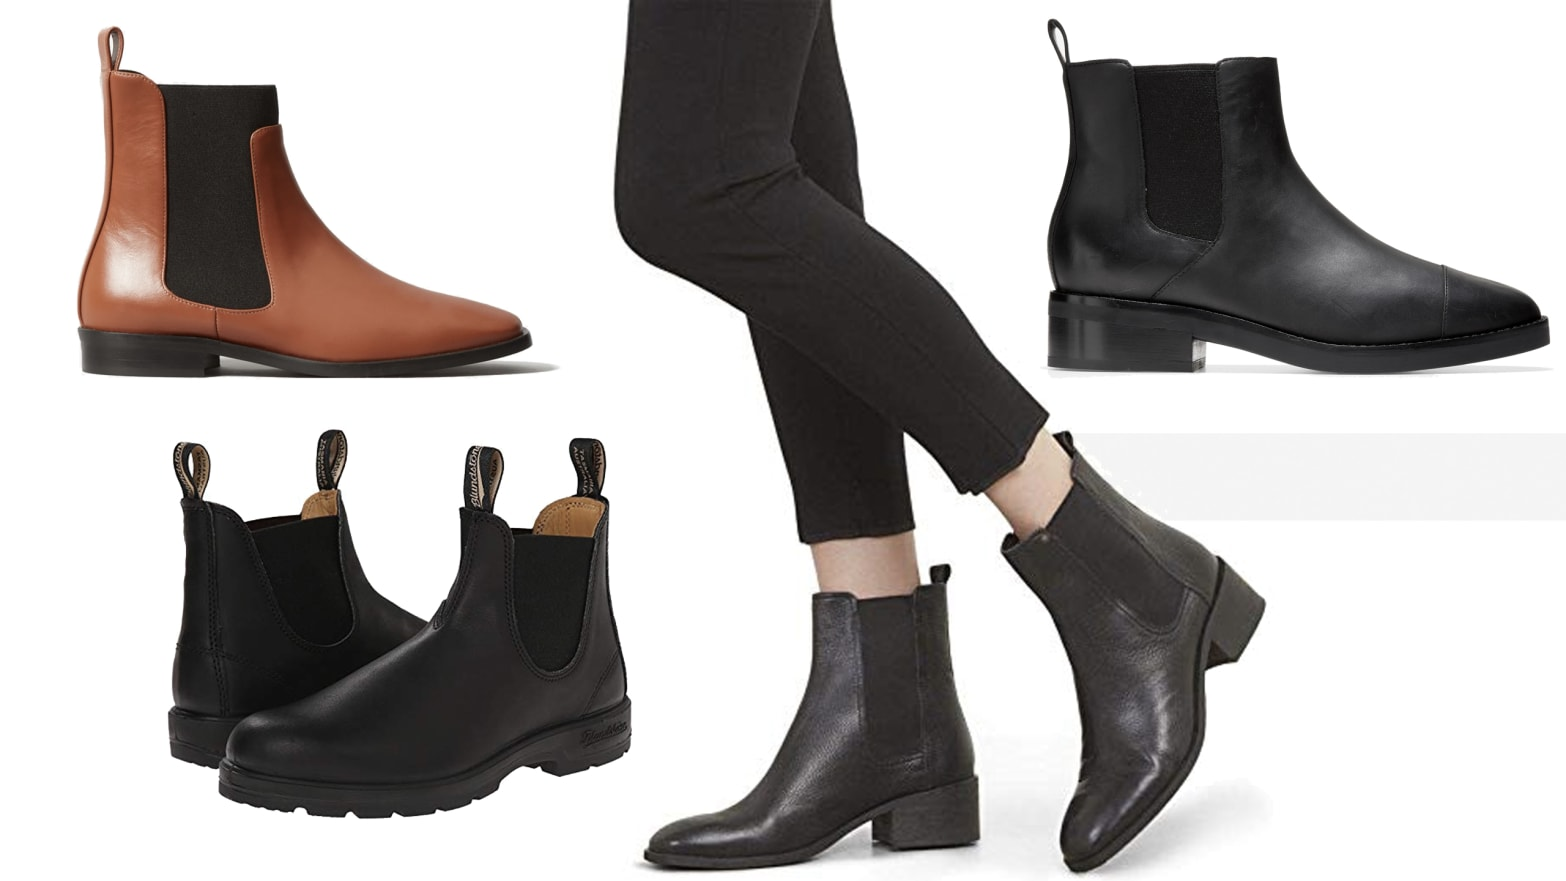 The Best Women's Chelsea Boots to Wear Right Now